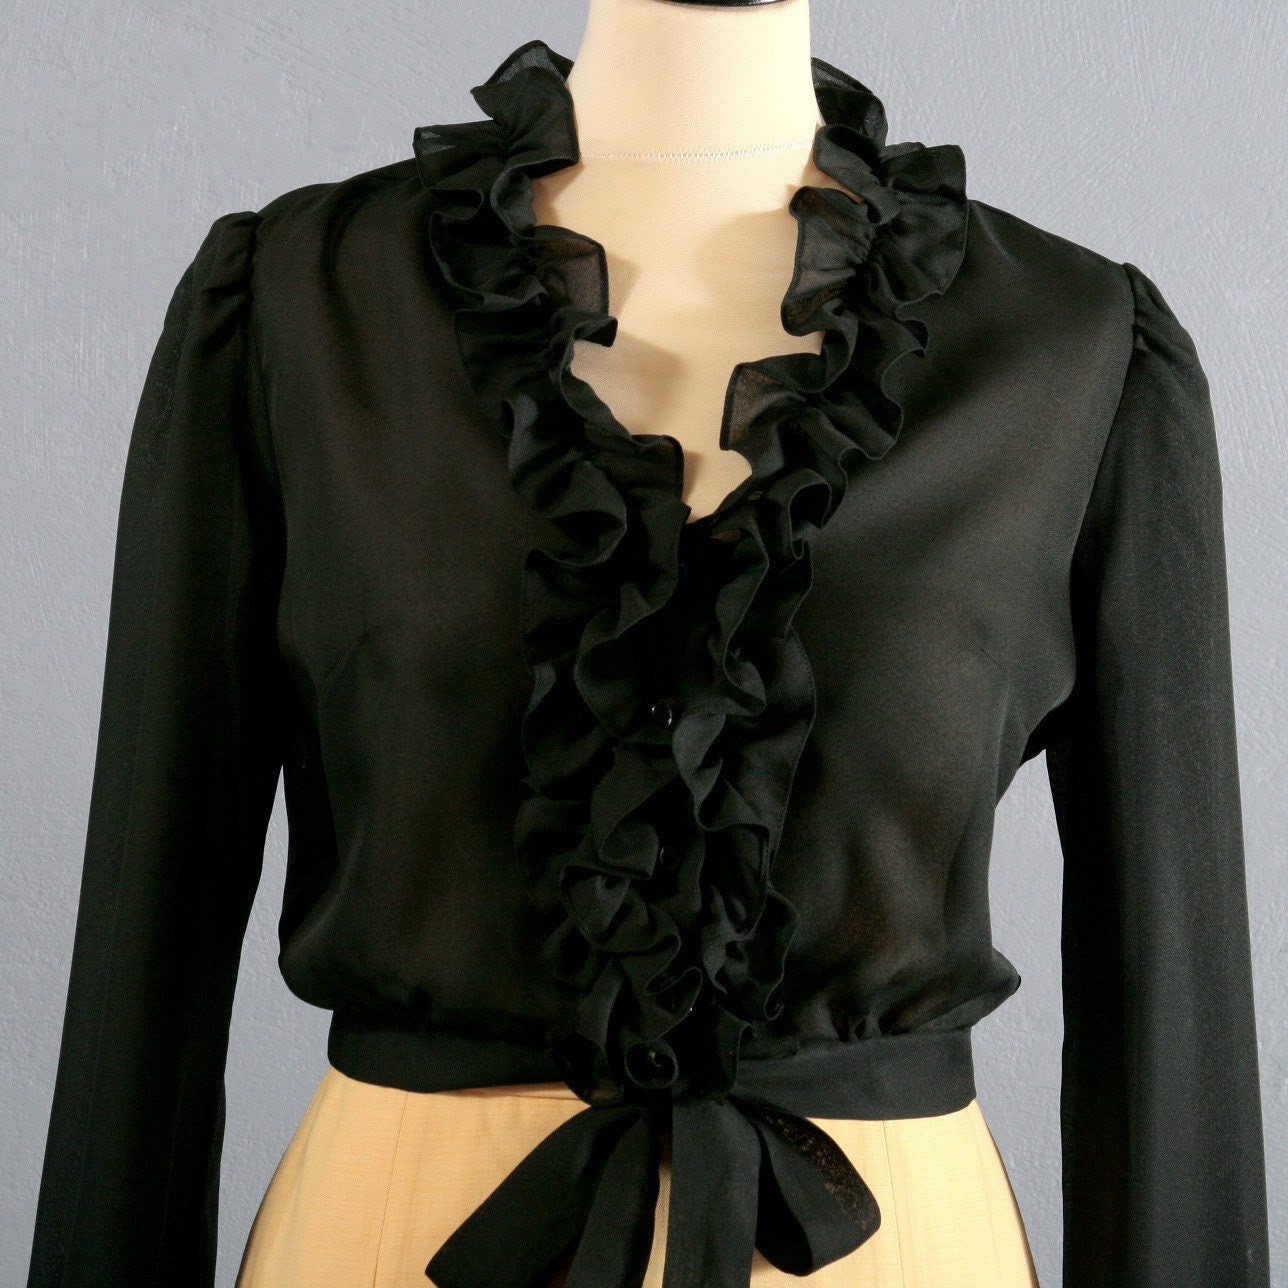 Vintage sheer BLACK RUFFLED flamenco blouse, size Medium, M